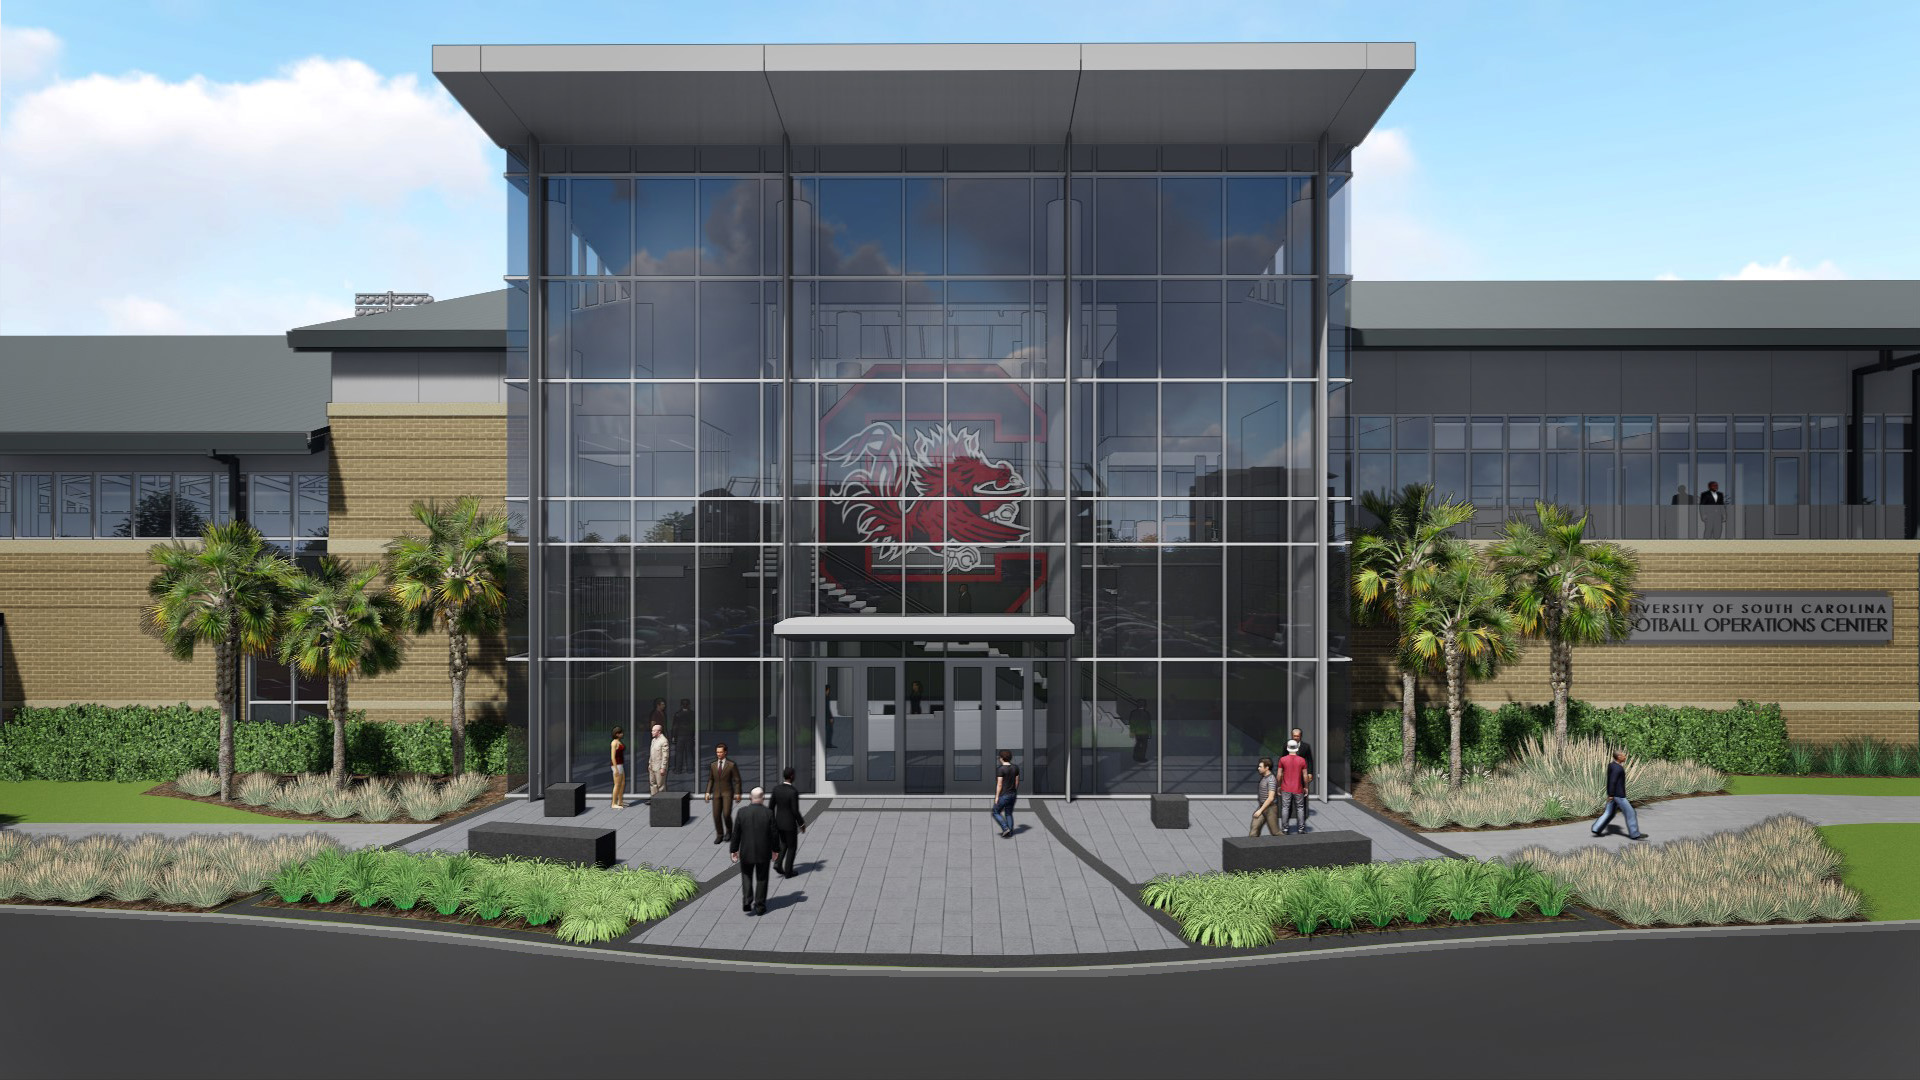 Gamecocks' facilities and success continue to grow